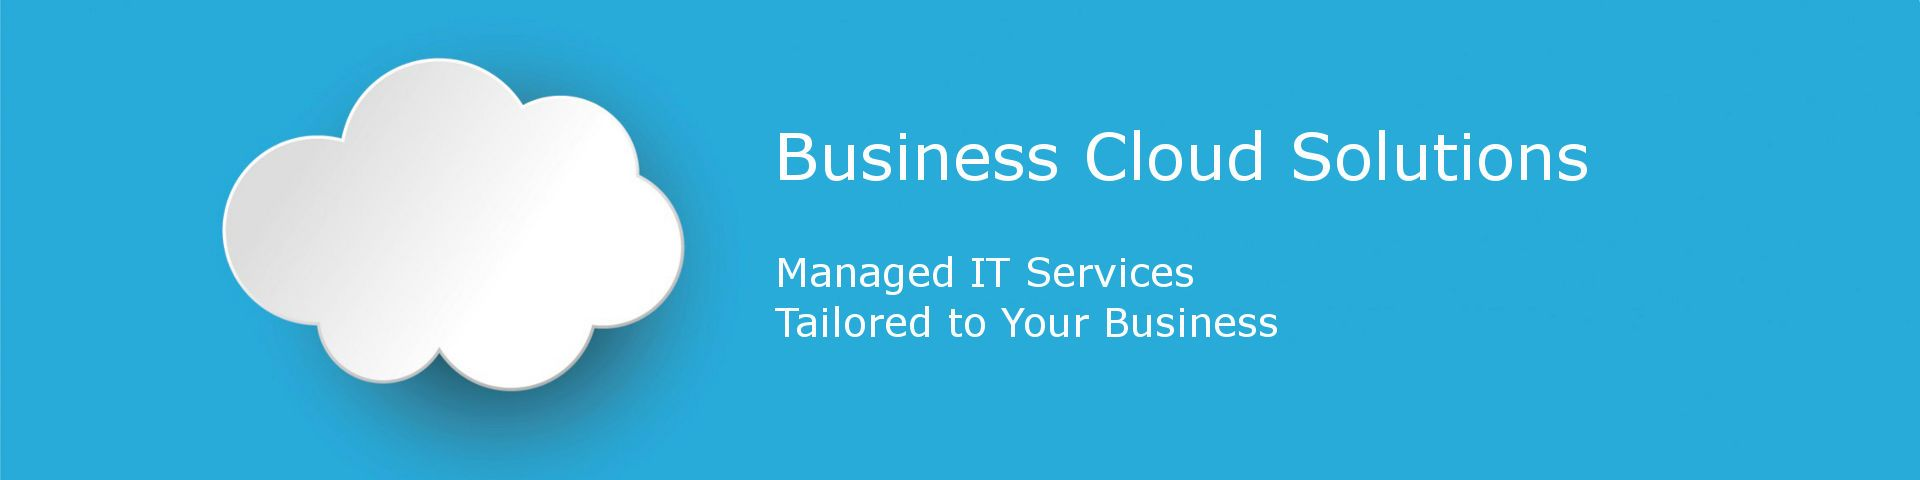 business-cloud-solutions